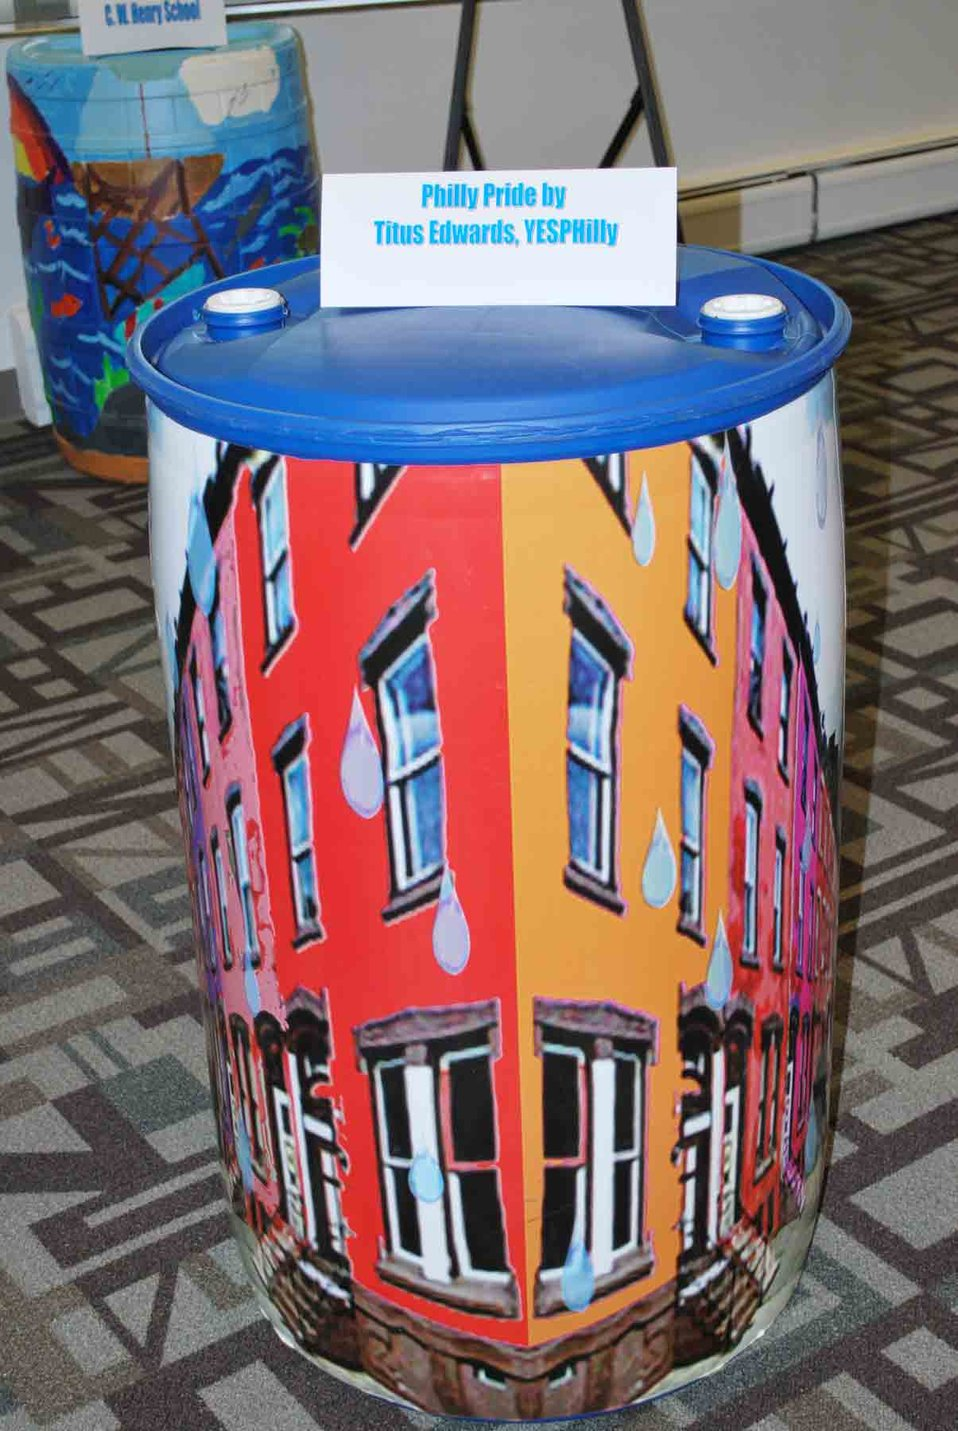 'Philly Pride' shown off by rain barrel